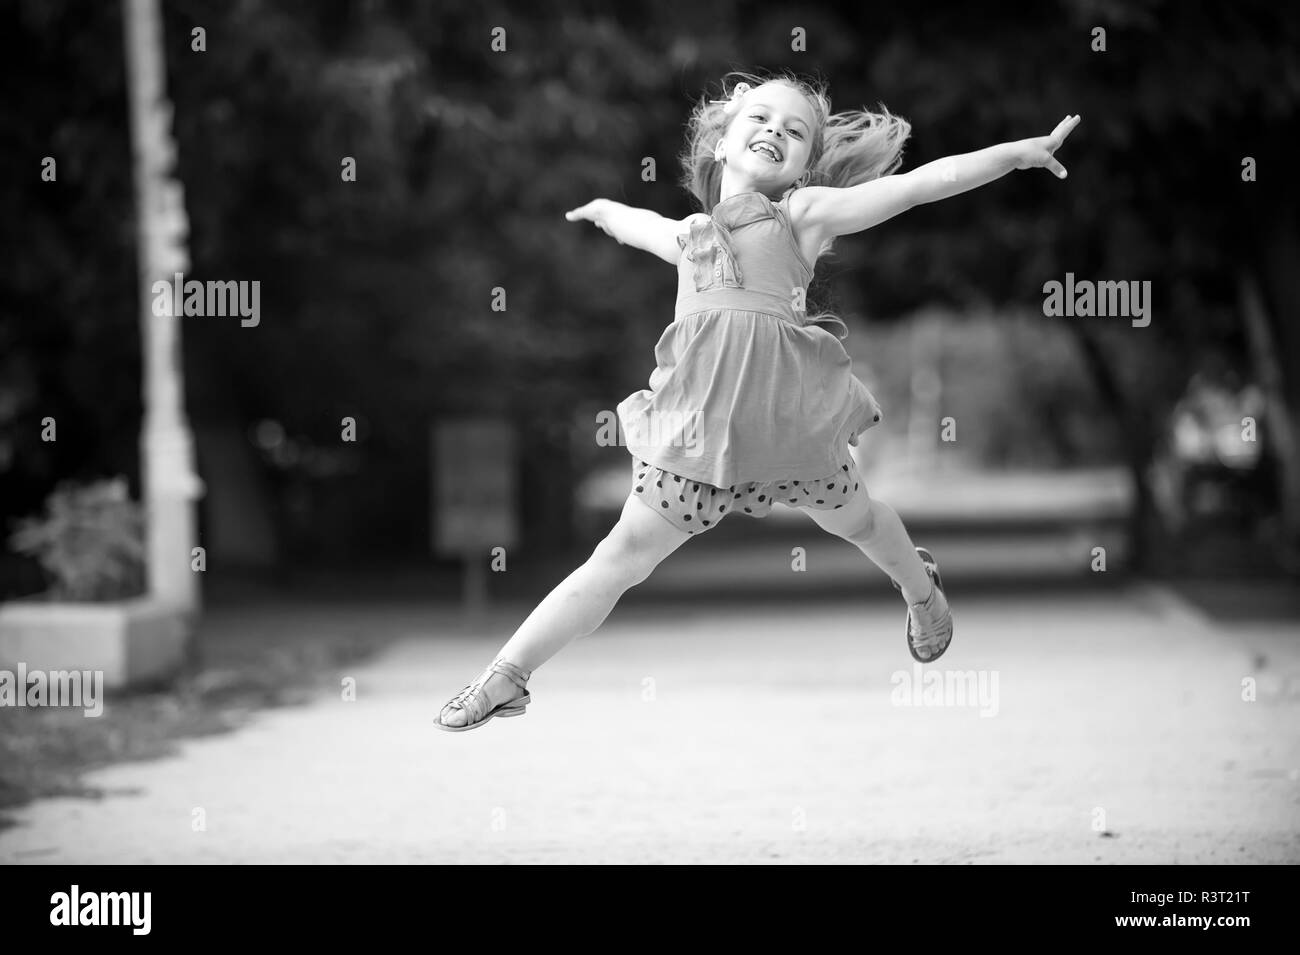 8181ee78 small baby girl or cute happy child with adorable smiling face and bow in  blonde hair